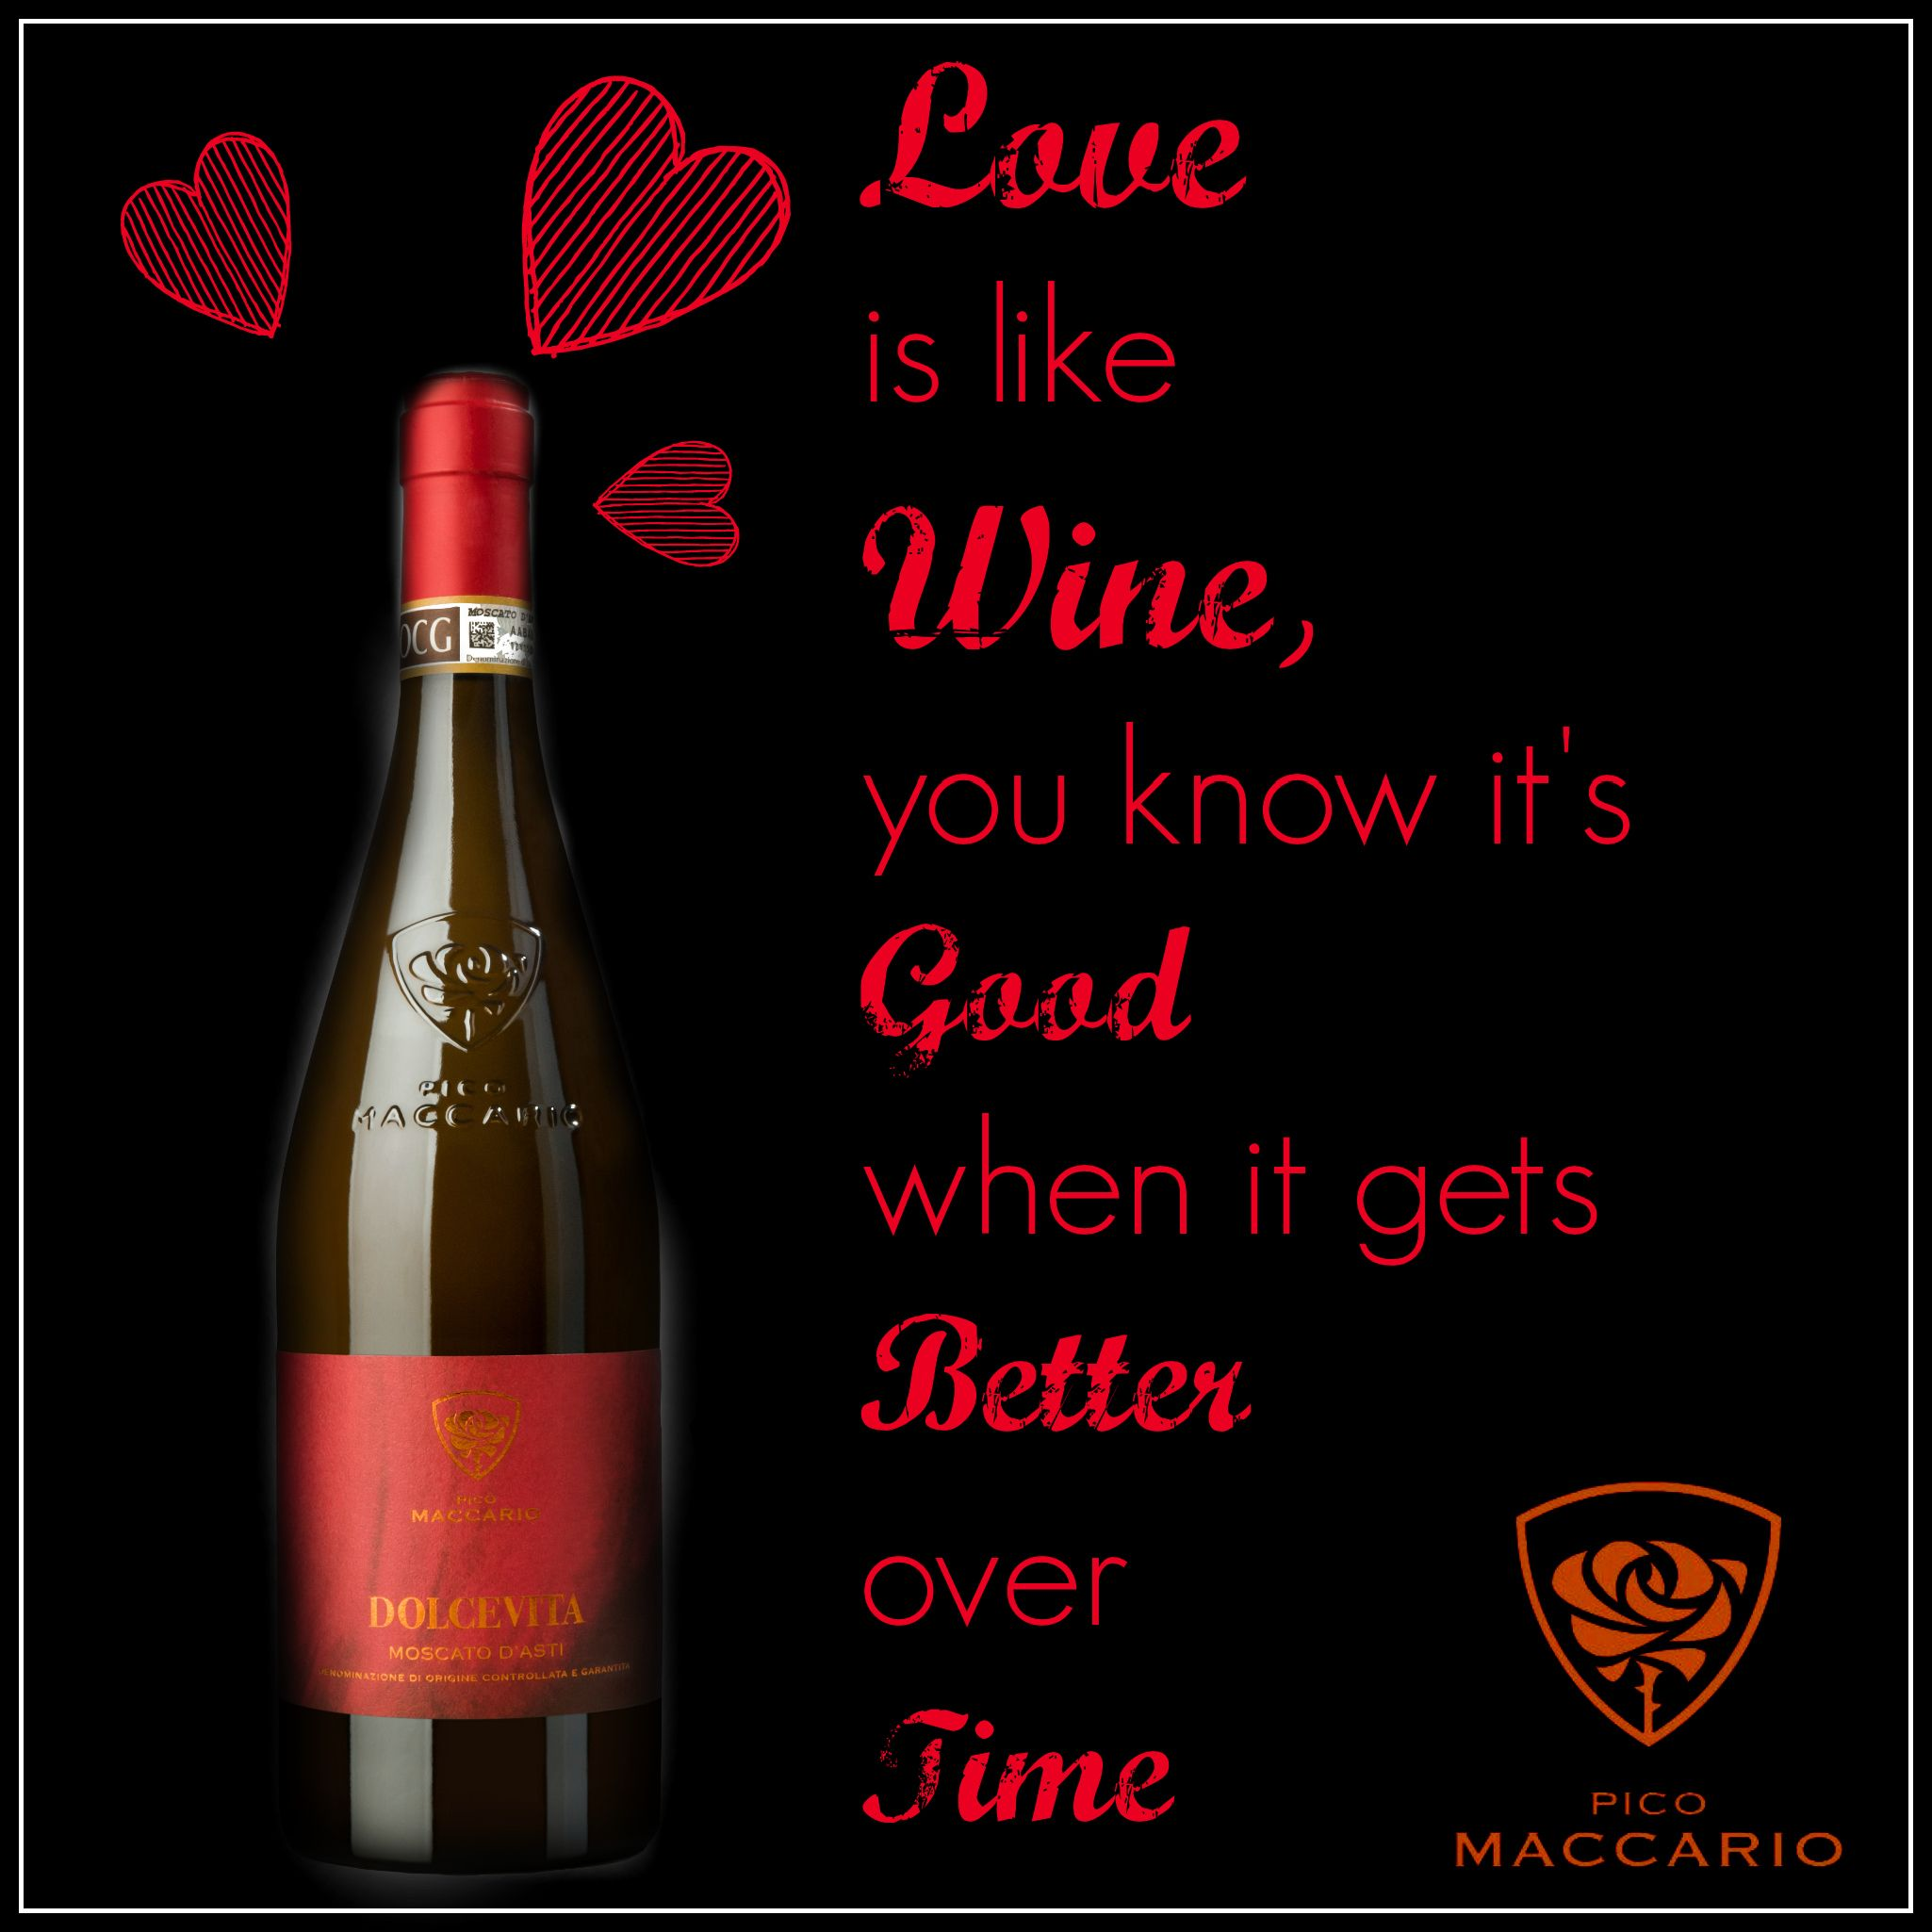 Picomaccario Love Quotes Wine Winelovers Moscatowine Moscatoasti Moscato Wine Wine Lovers It Gets Better